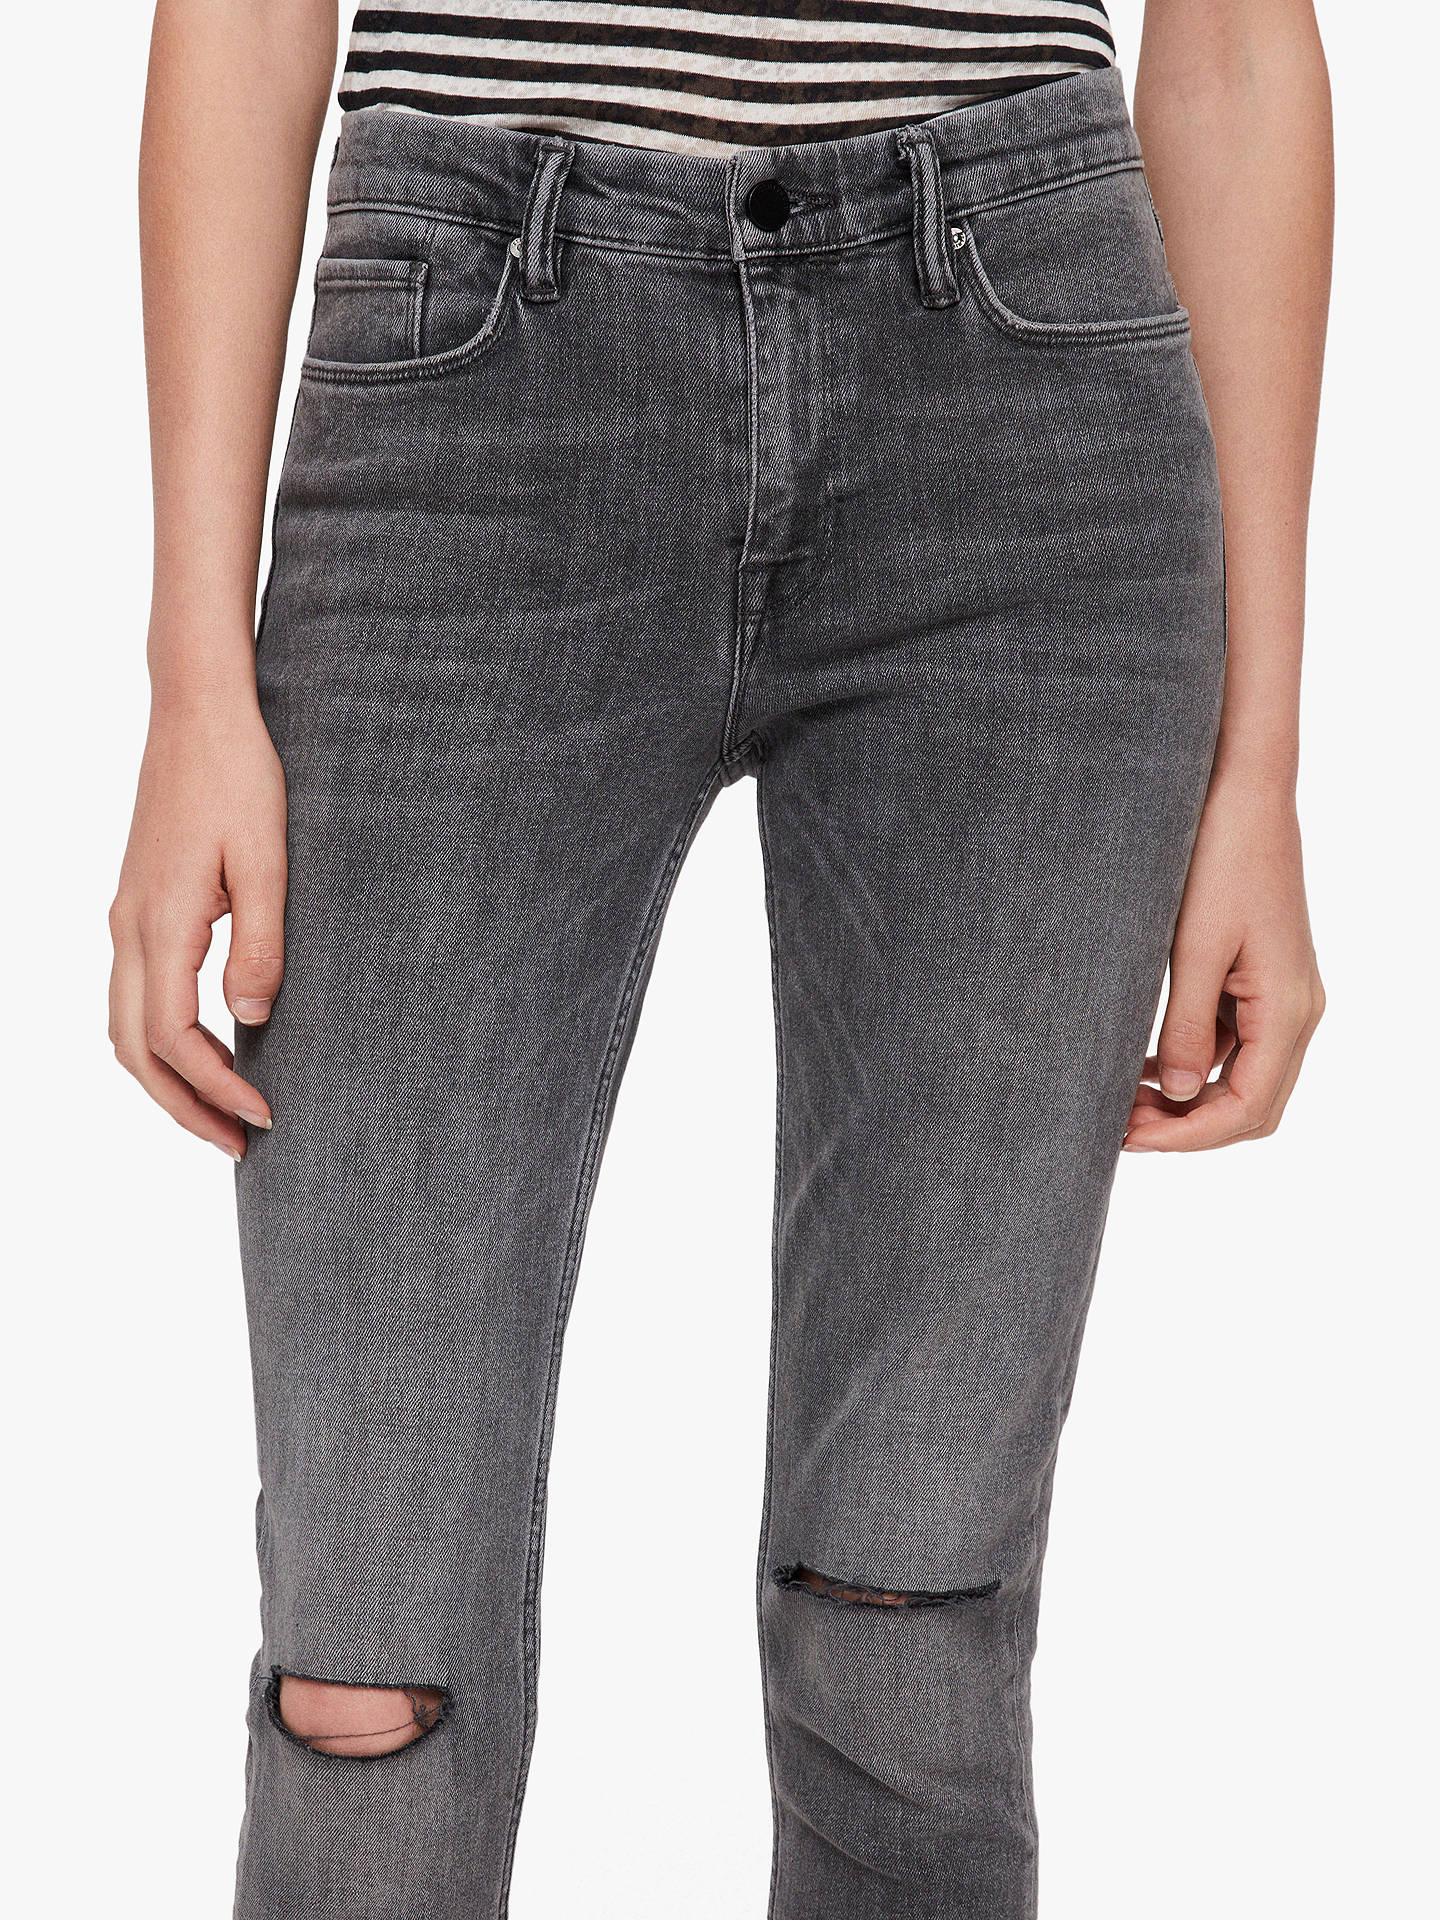 Buy AllSaints Grace Ripped Skinny Jeans, Washed Black, 27R Online at johnlewis.com